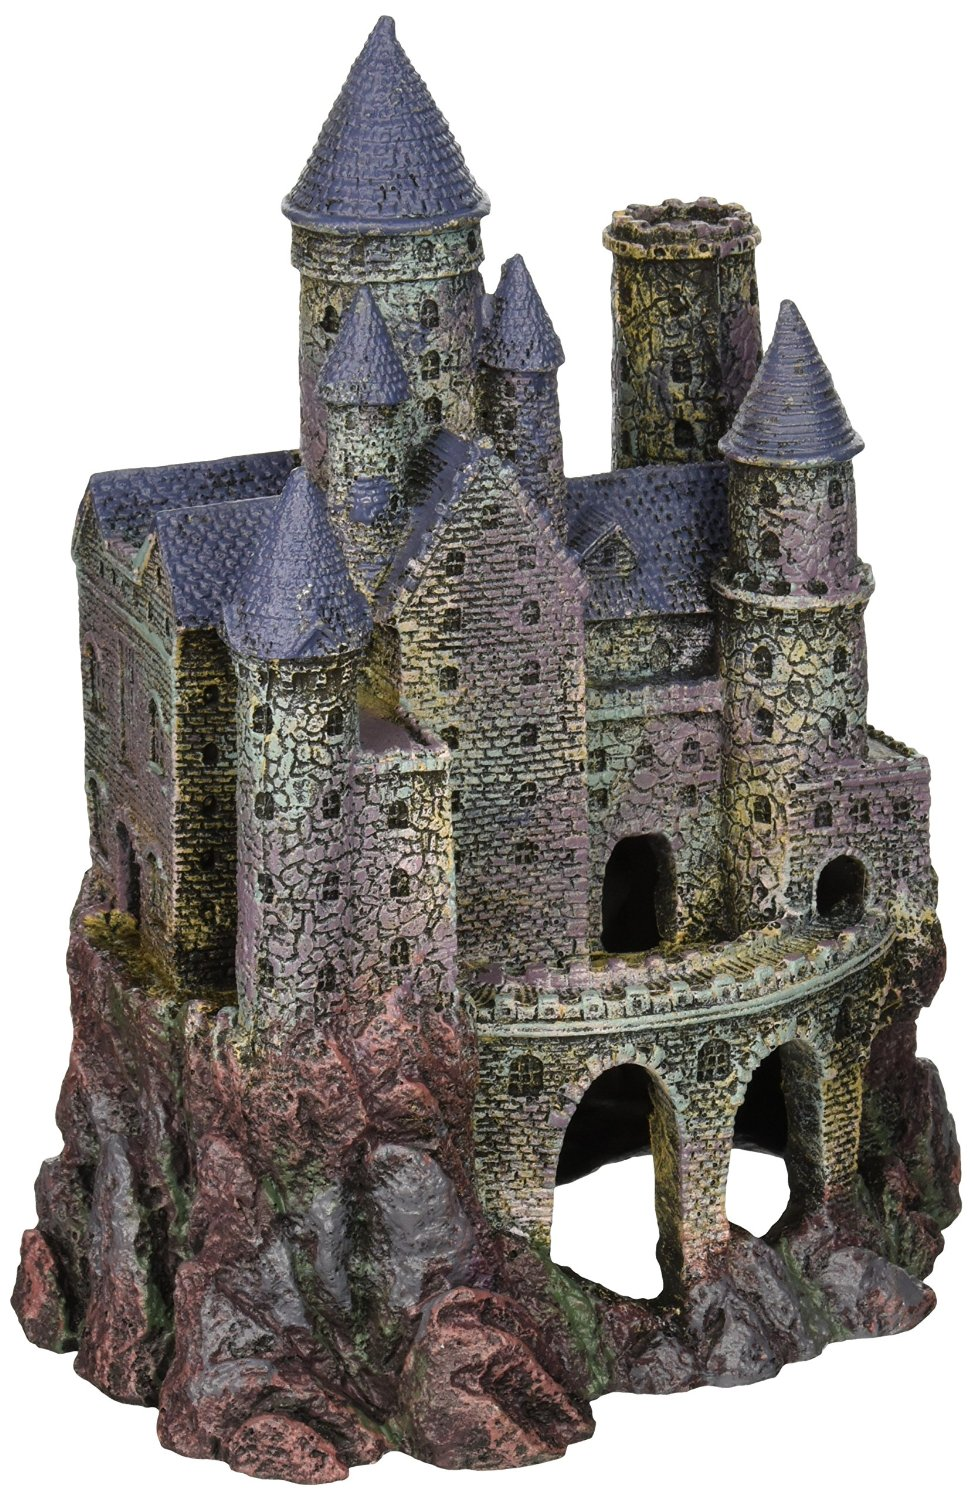 penn plax wizards castle aquarium decoration hand painted with realistic details over 10 inches high walmartcom